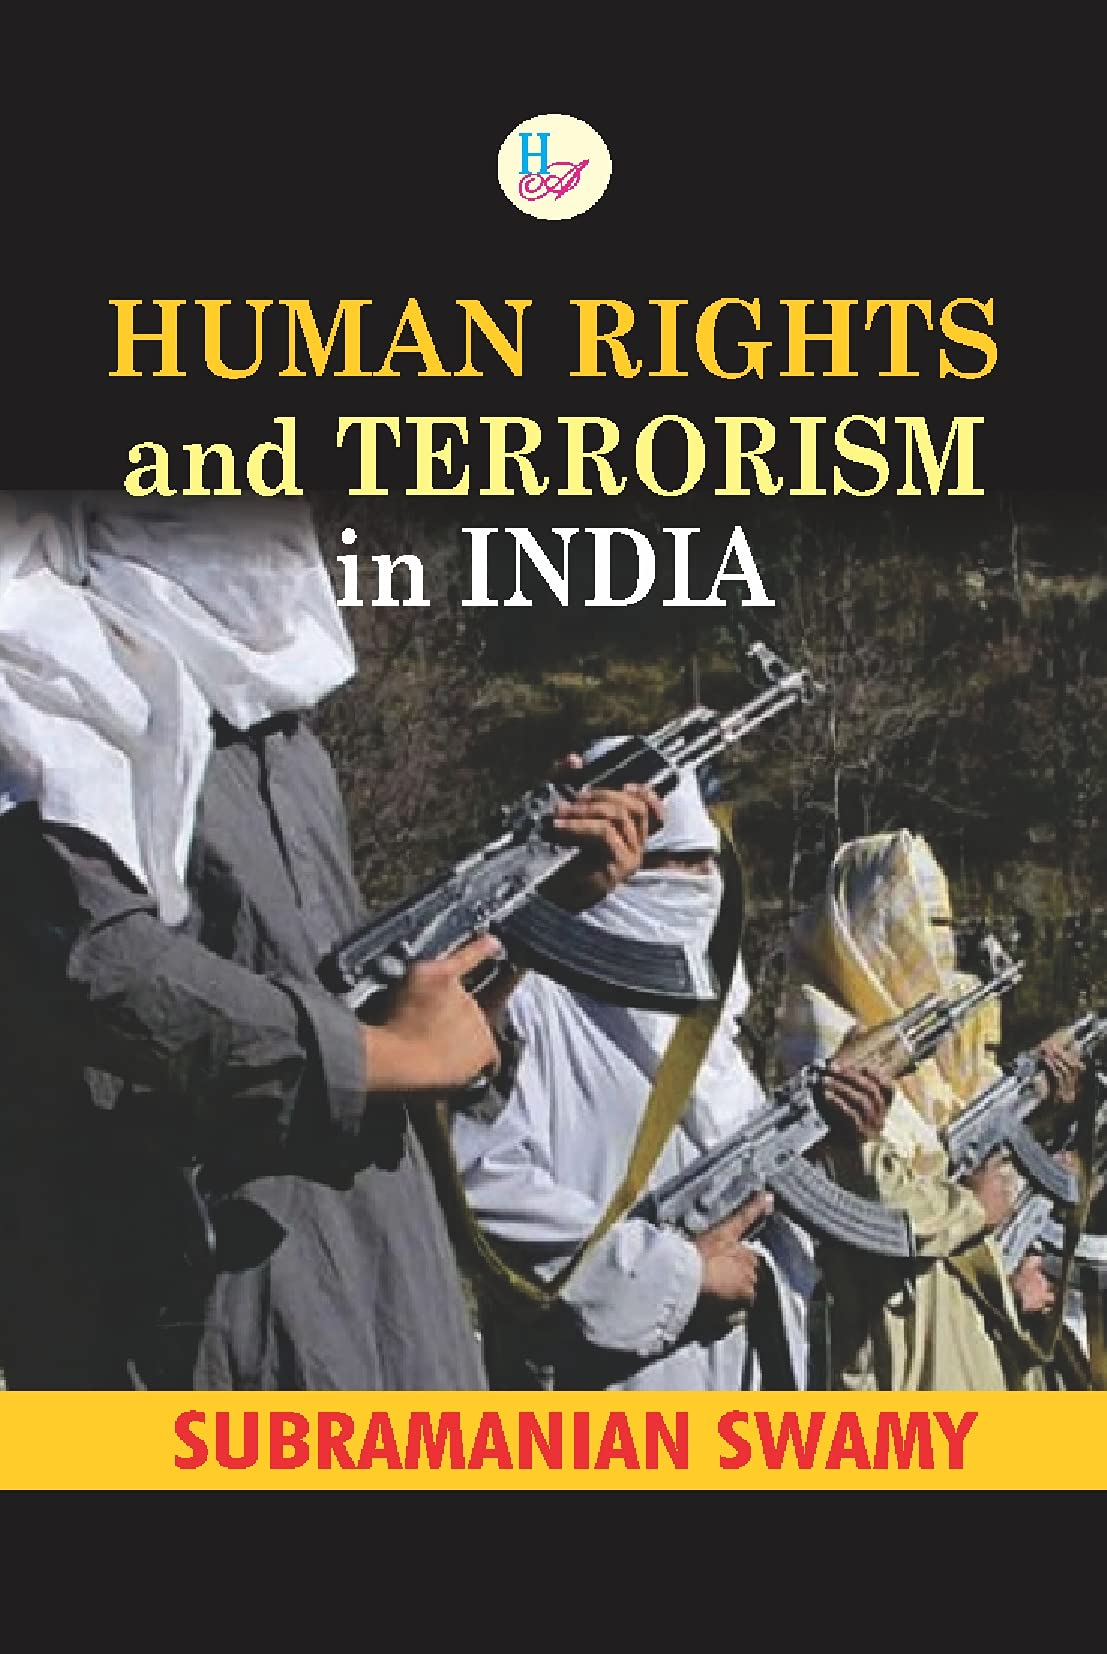 Book titled 'Human Rights and Terrorism in India' Released by Subramanian Swamy